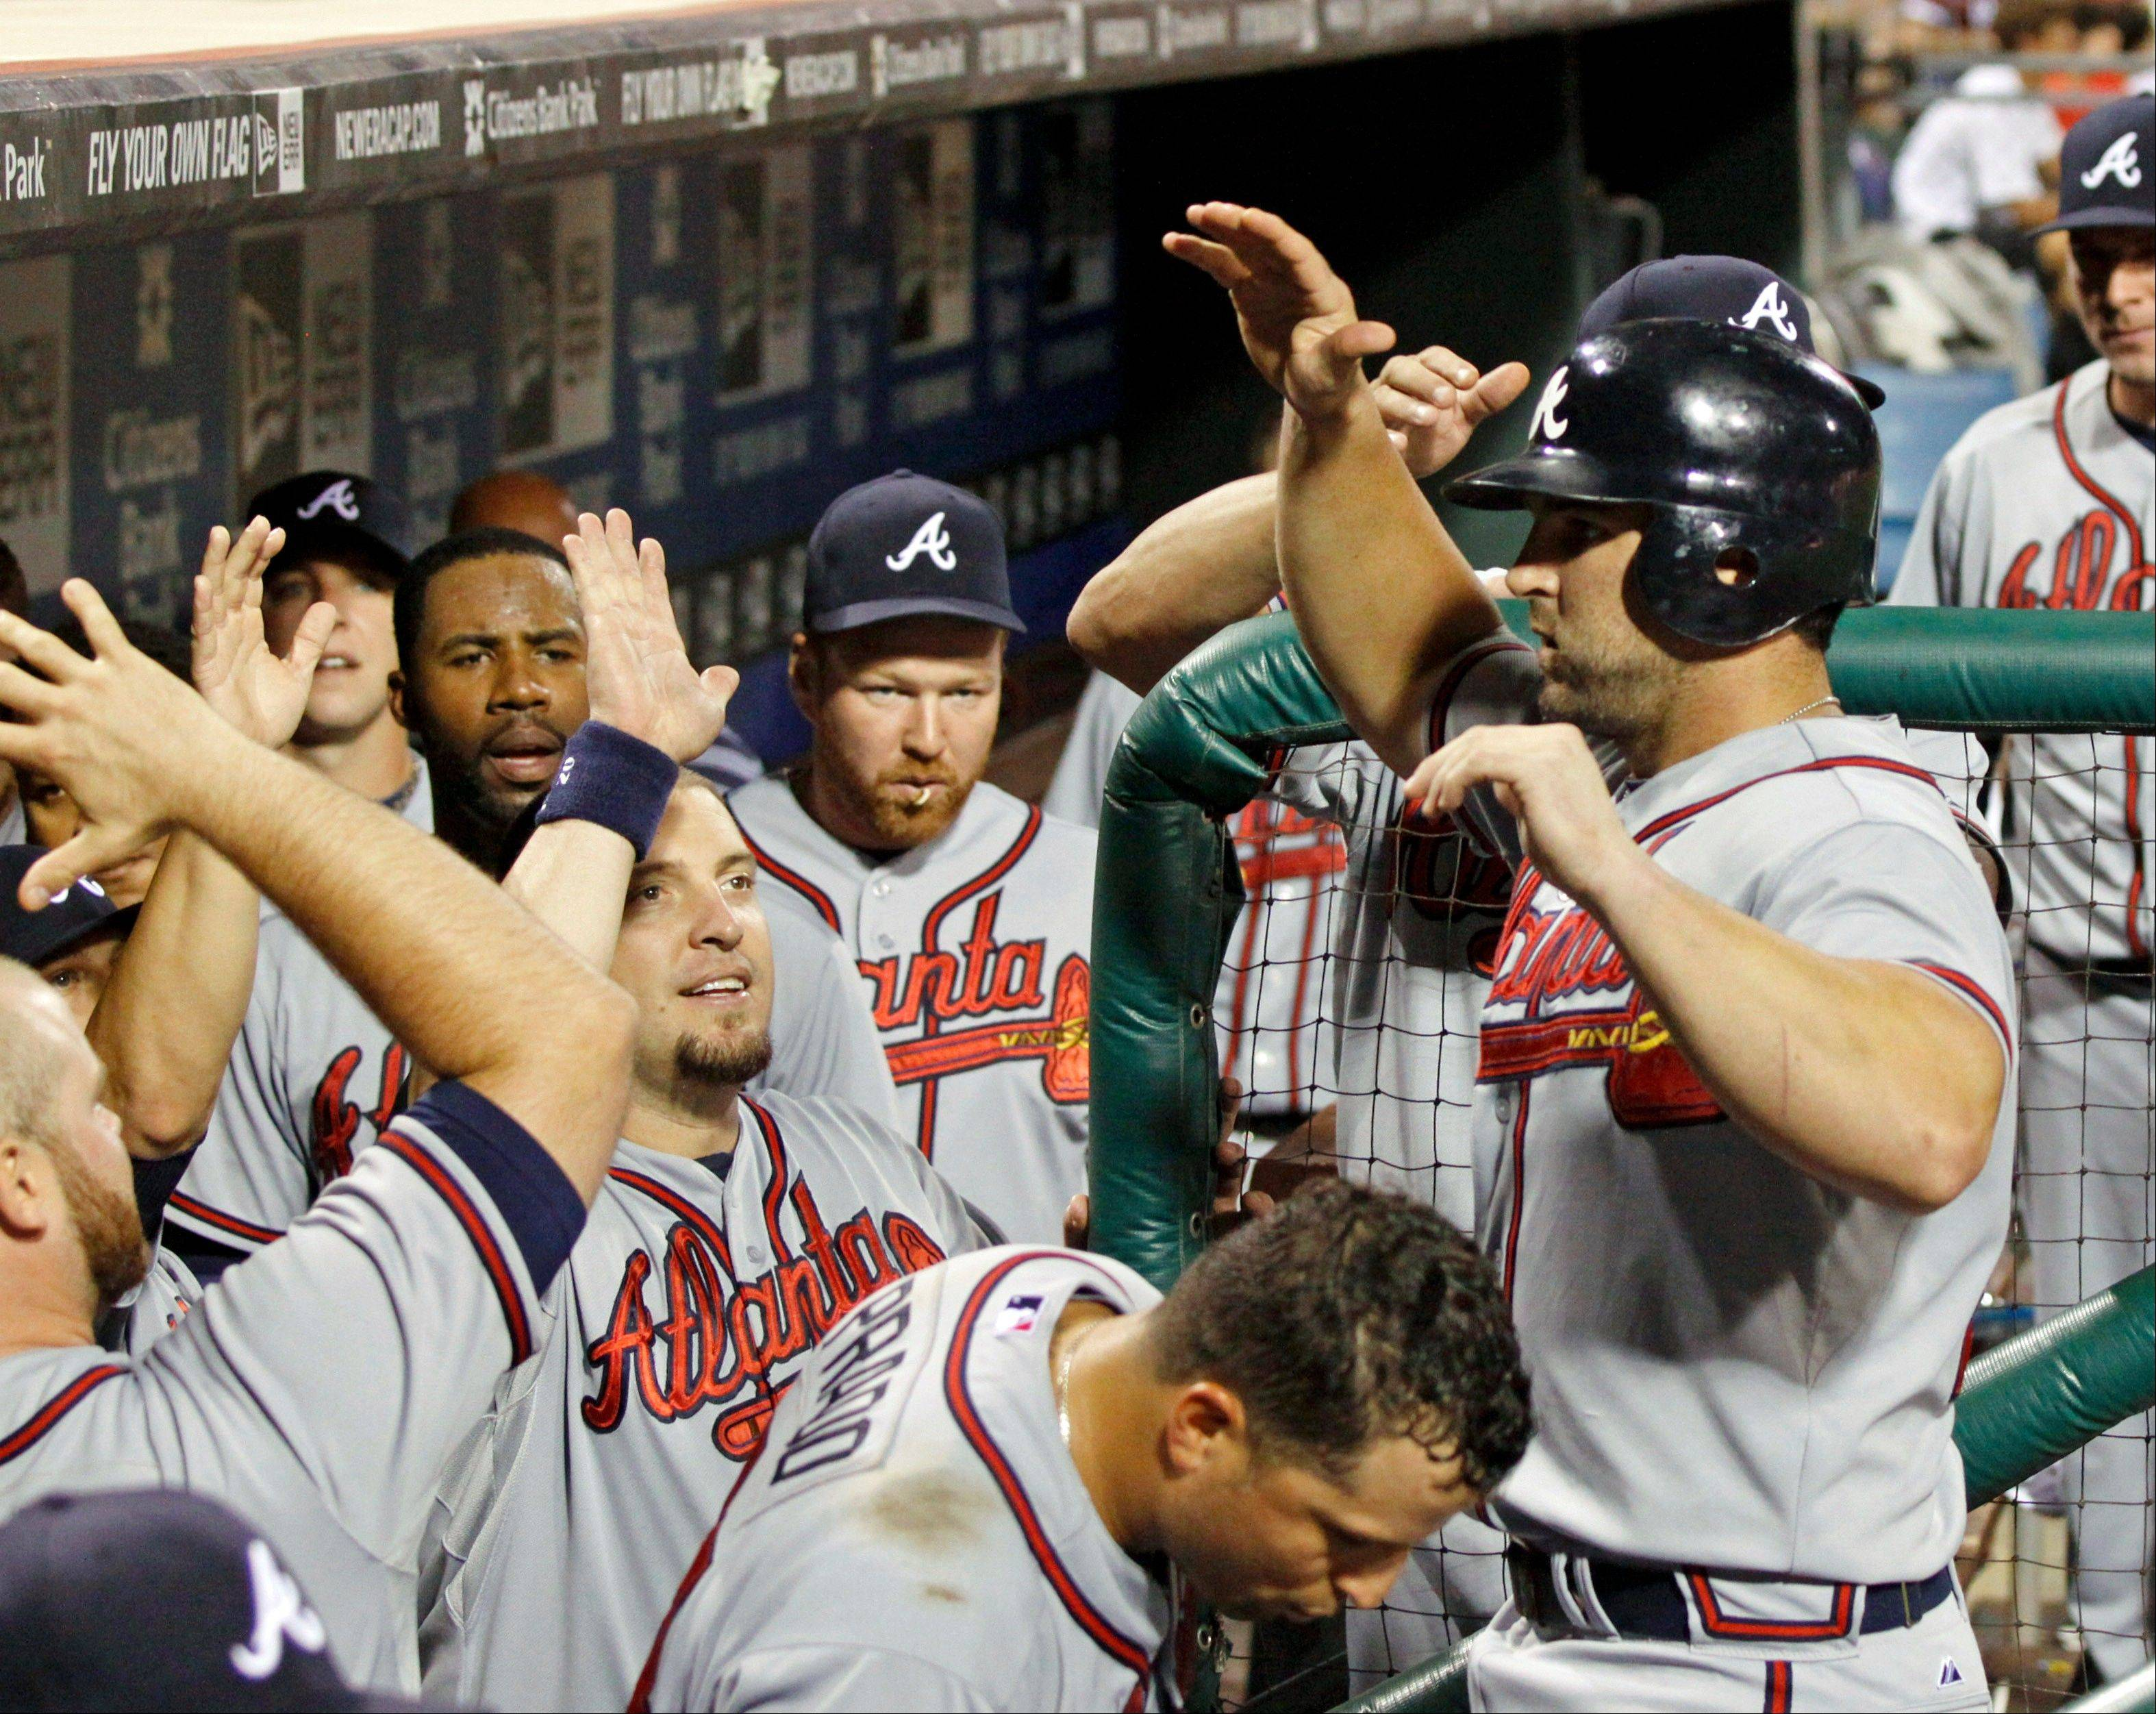 Atlanta's Dan Uggla, right, celebrates with teammates after scoring against the Phillies in the seventh inning Wednesday in Philadelphia.